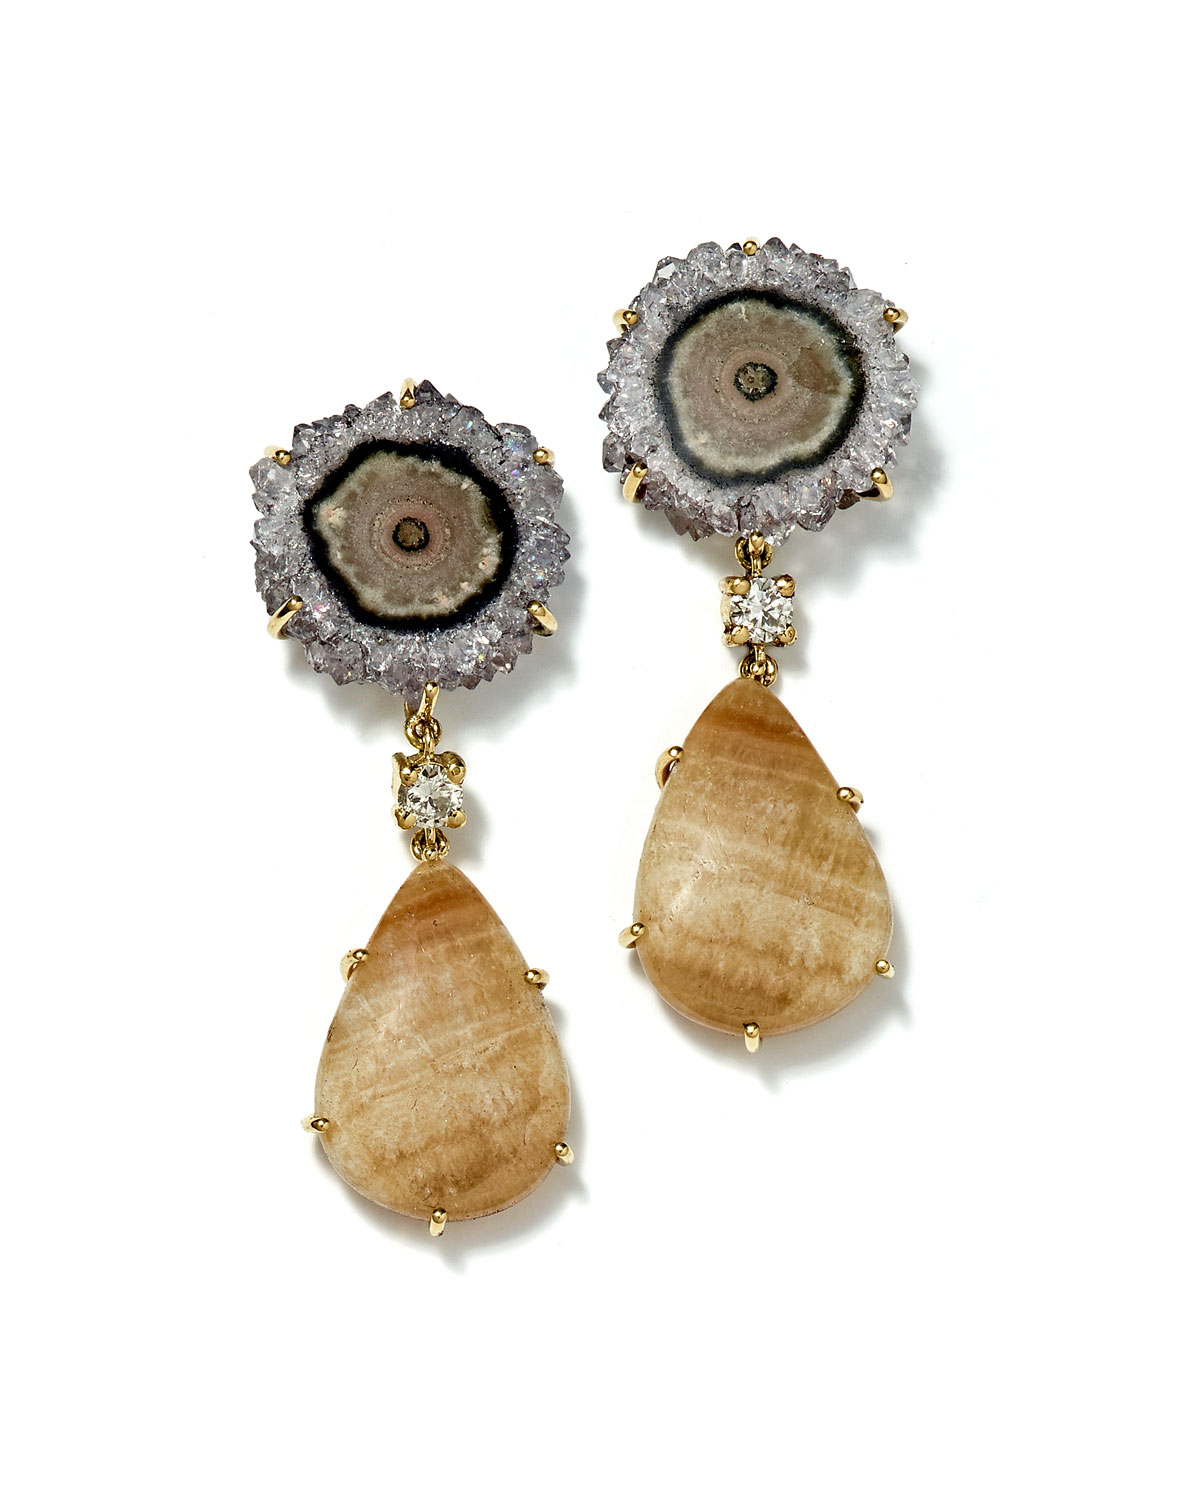 Jan Leslie Ties 18K 2-TIER TRIBAL LUXURY EARRINGS, GRAY/TAN